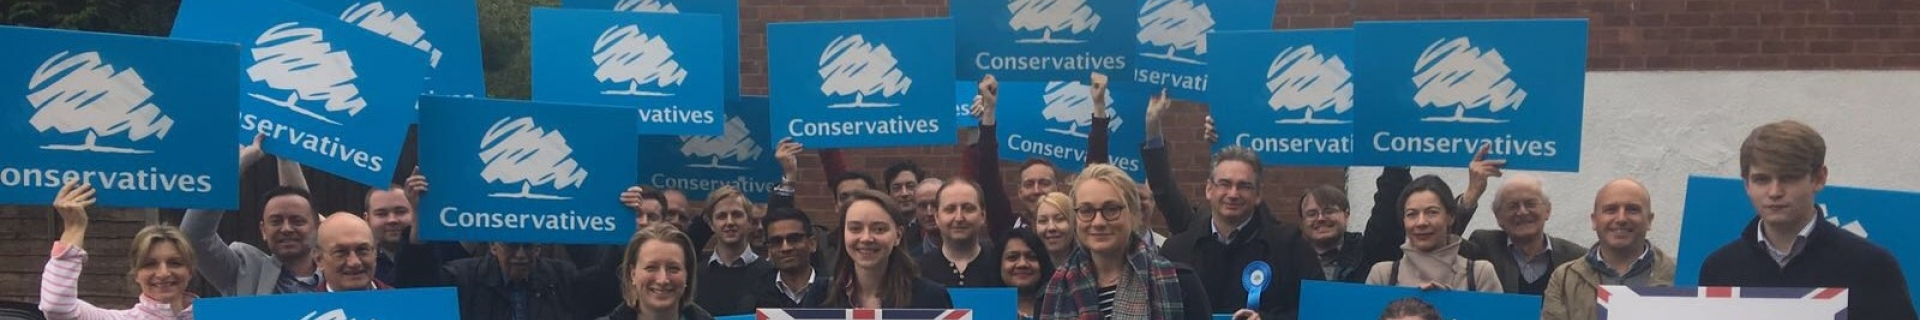 Banner image for Birmingham Conservatives